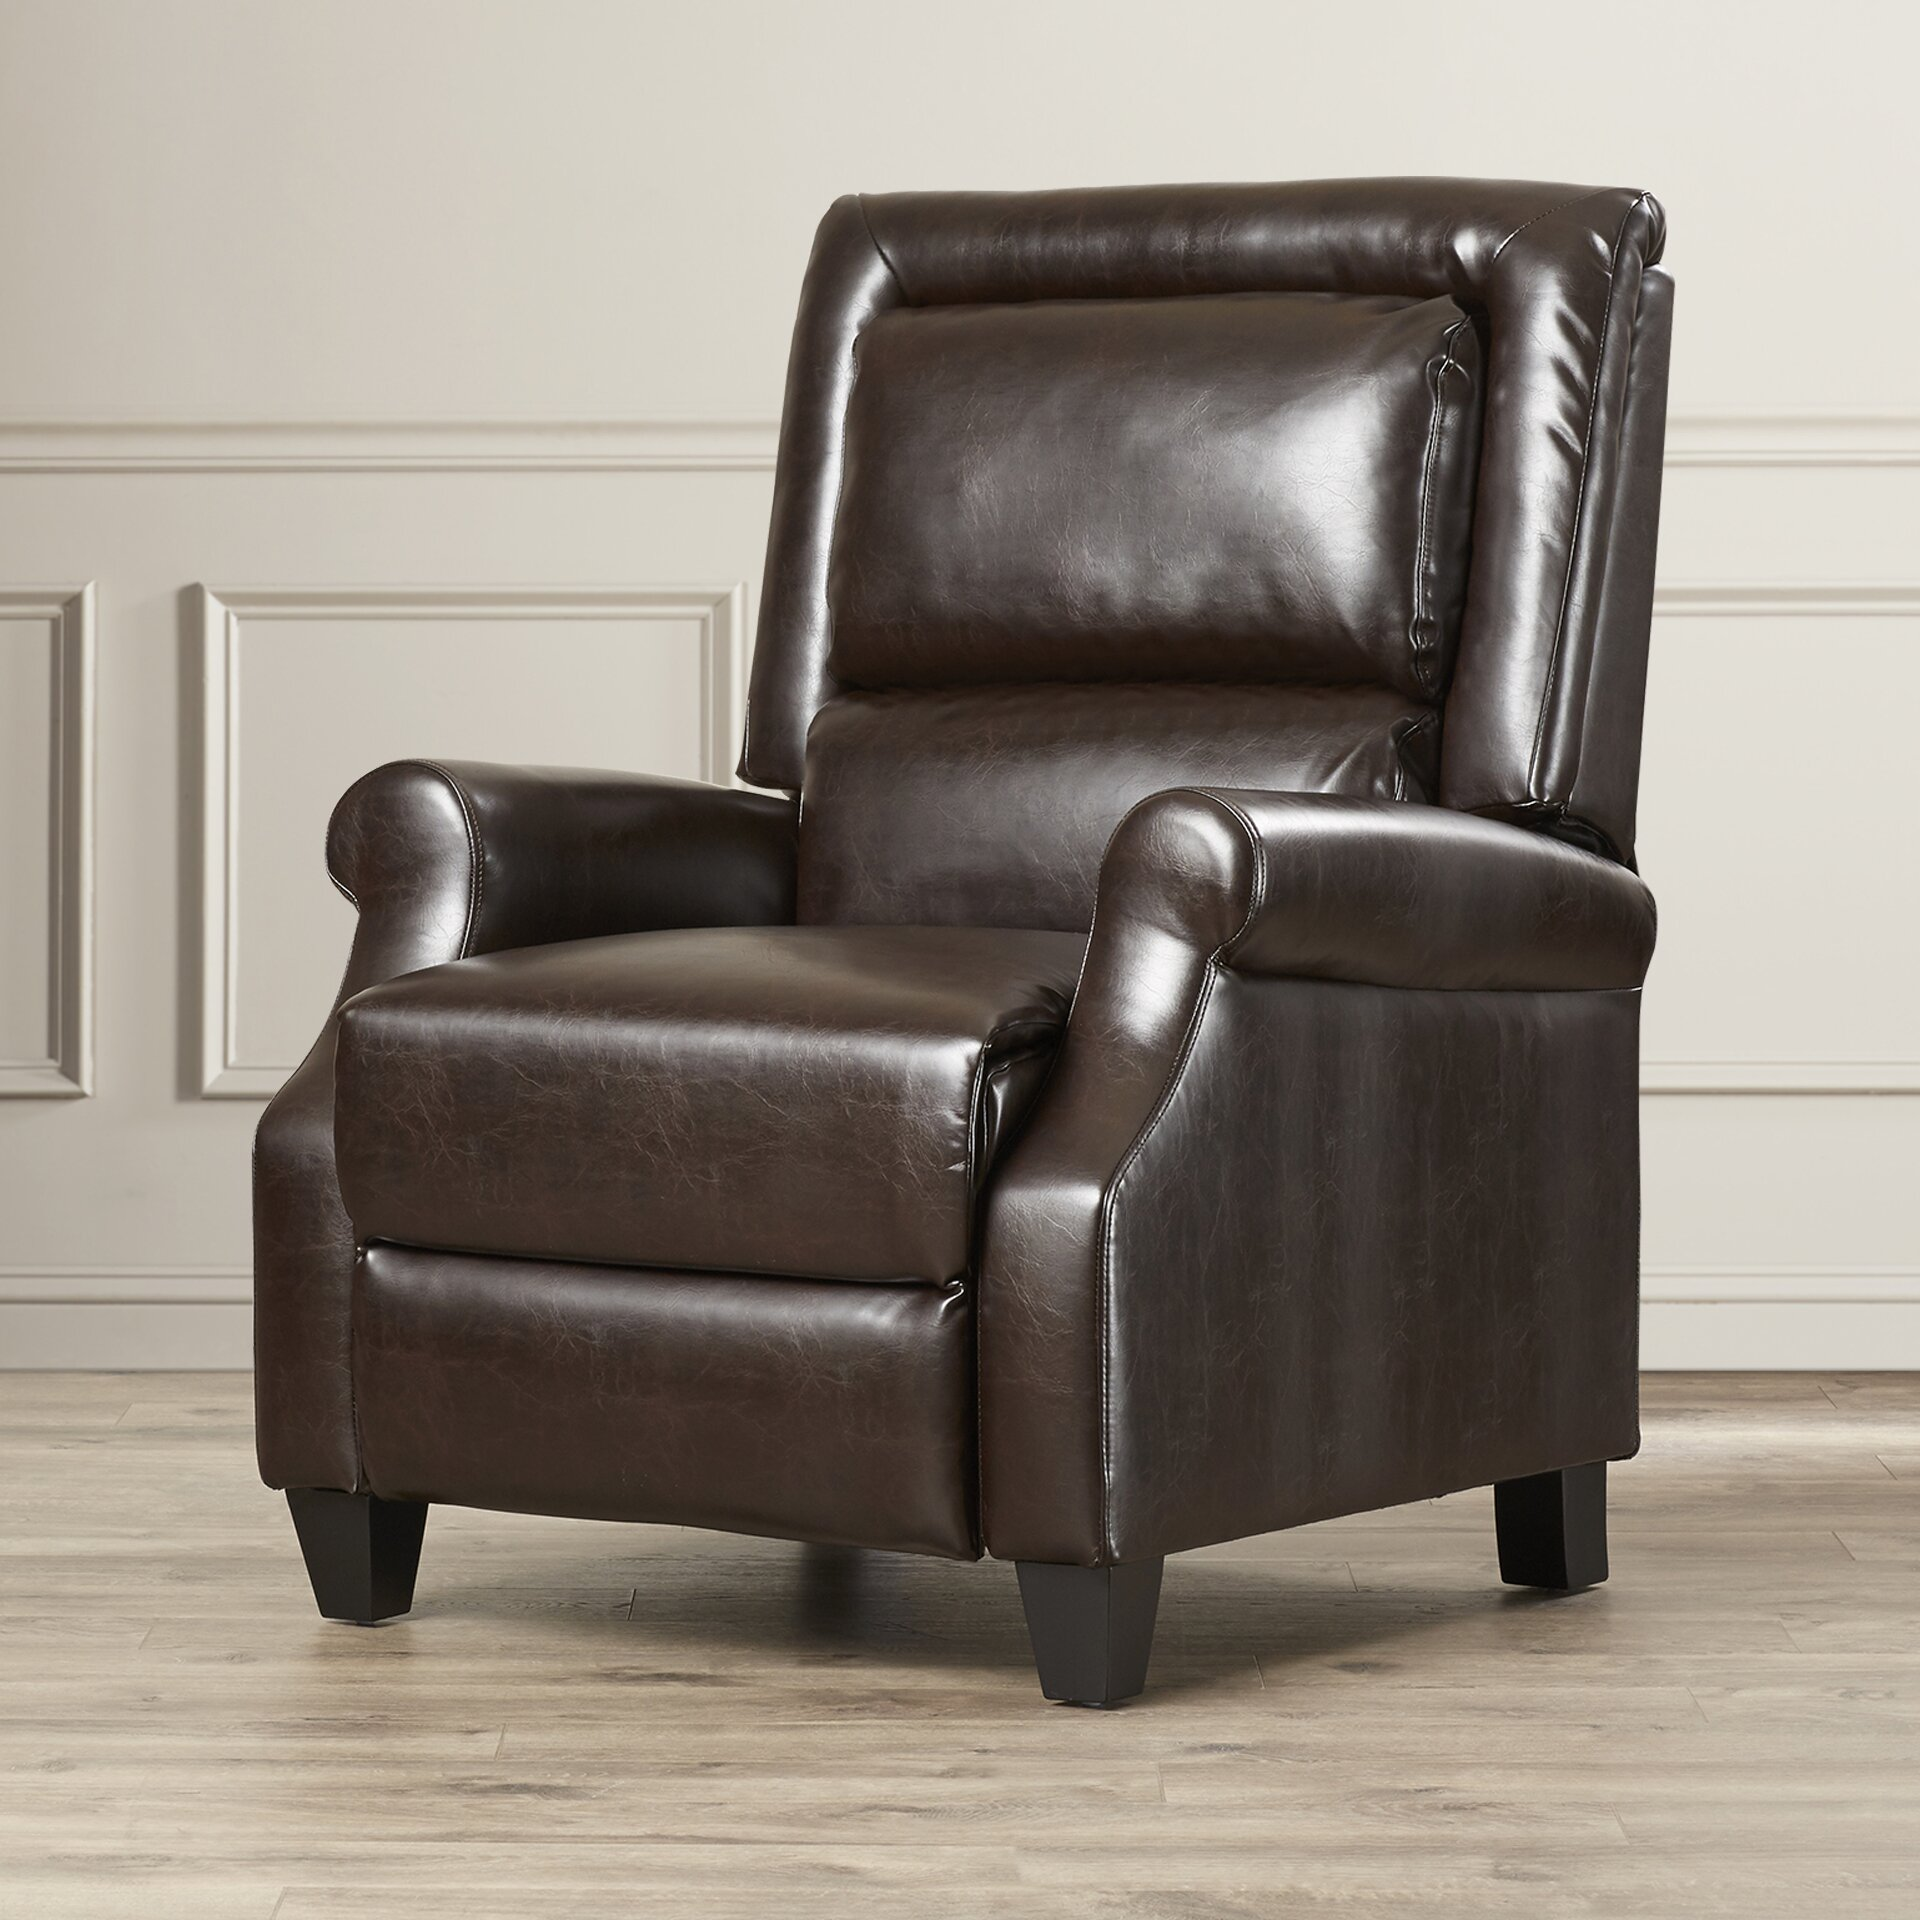 Club chair recliner - Millwood Reclining Chair